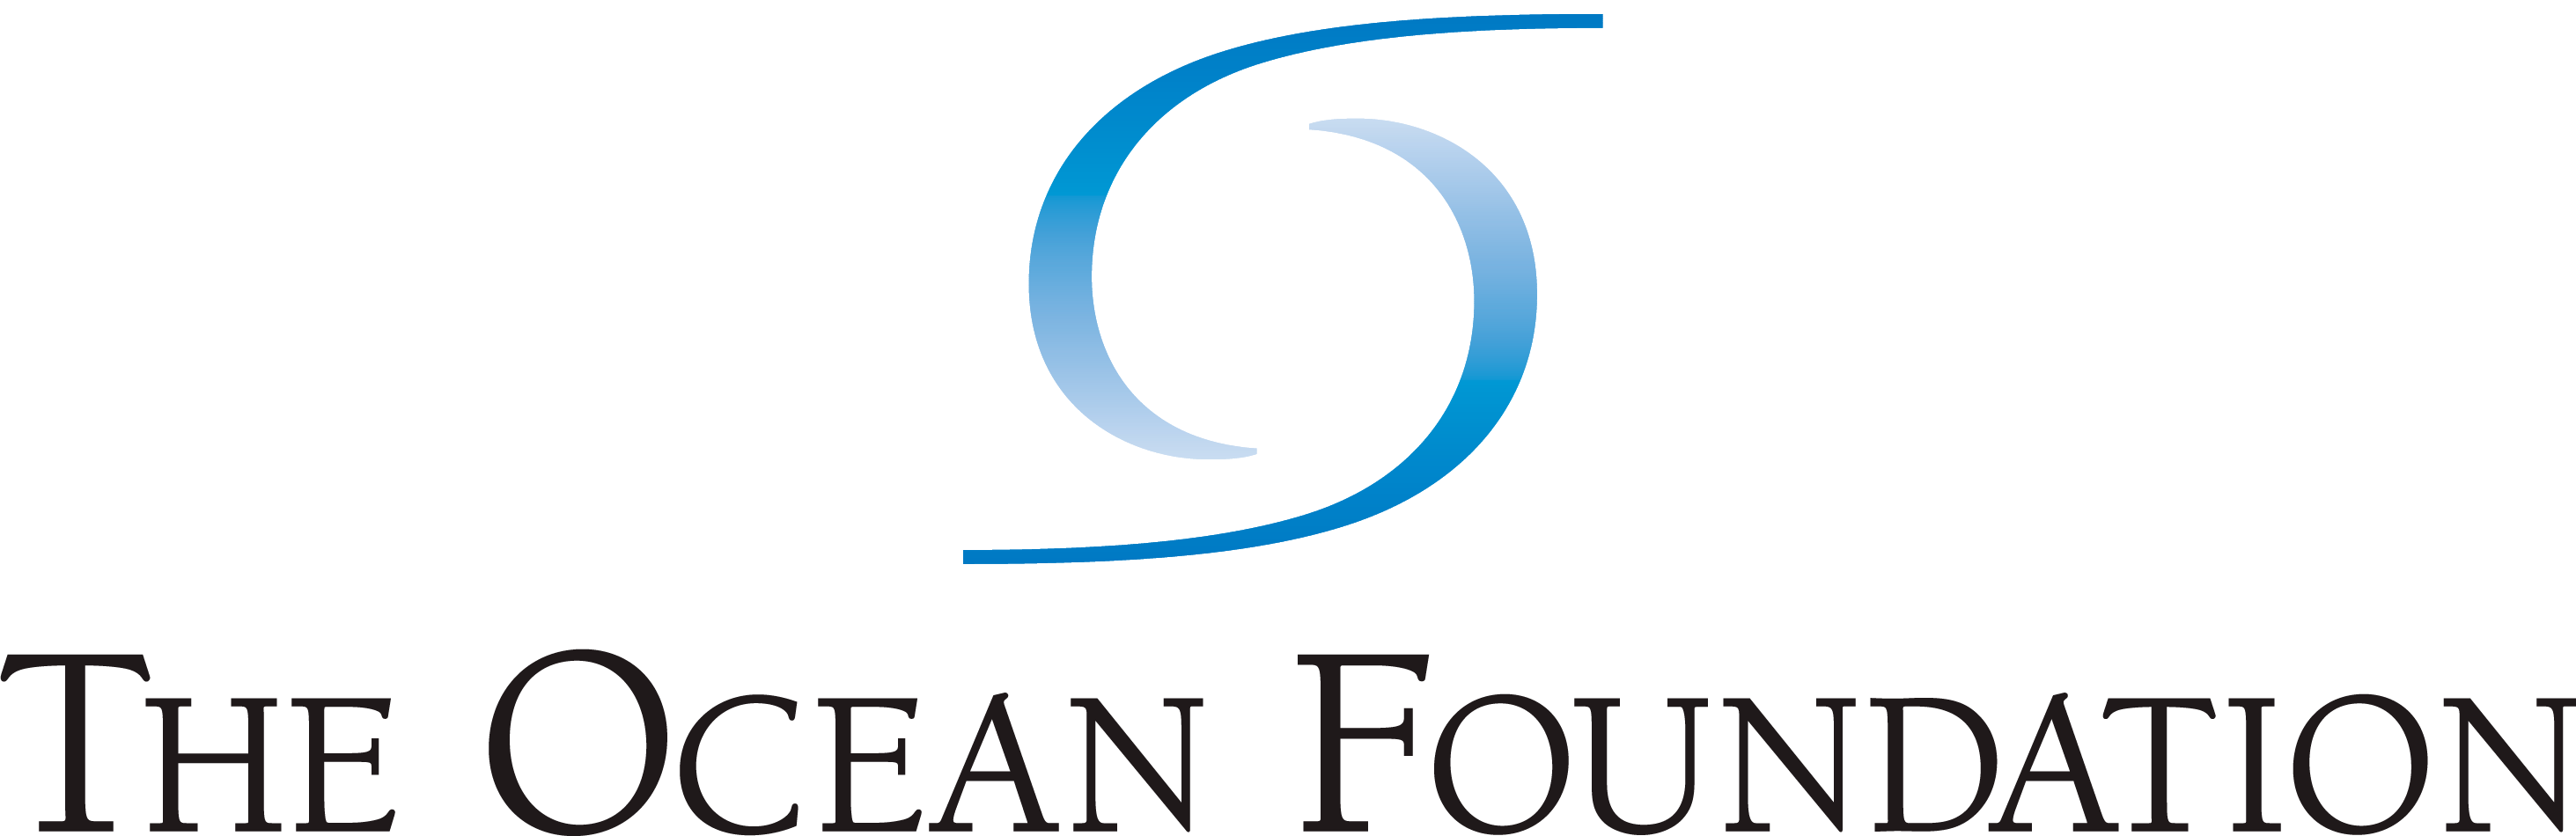 The Ocean Foundation logo